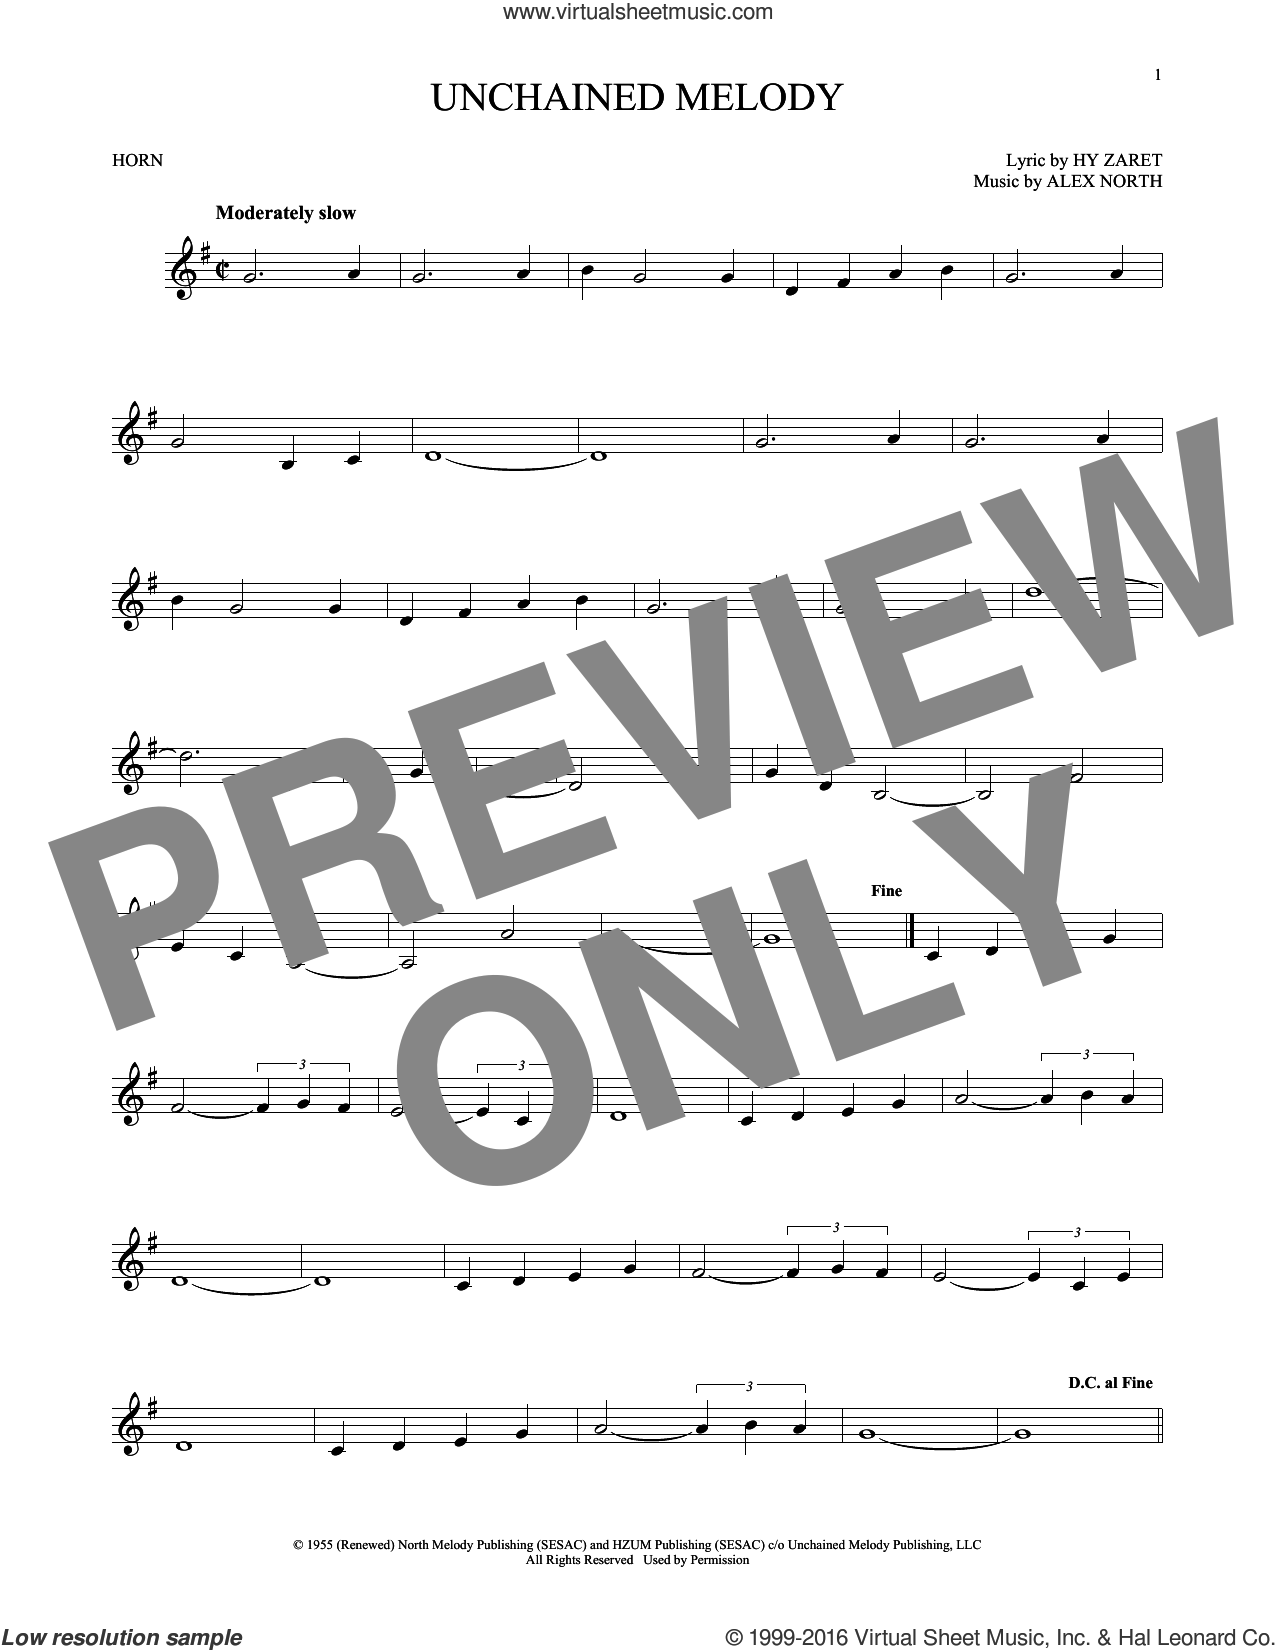 Unchained Melody sheet music for horn solo by The Righteous Brothers, Al Hibbler, Barry Manilow, Elvis Presley, Les Baxter, Alex North and Hy Zaret, intermediate